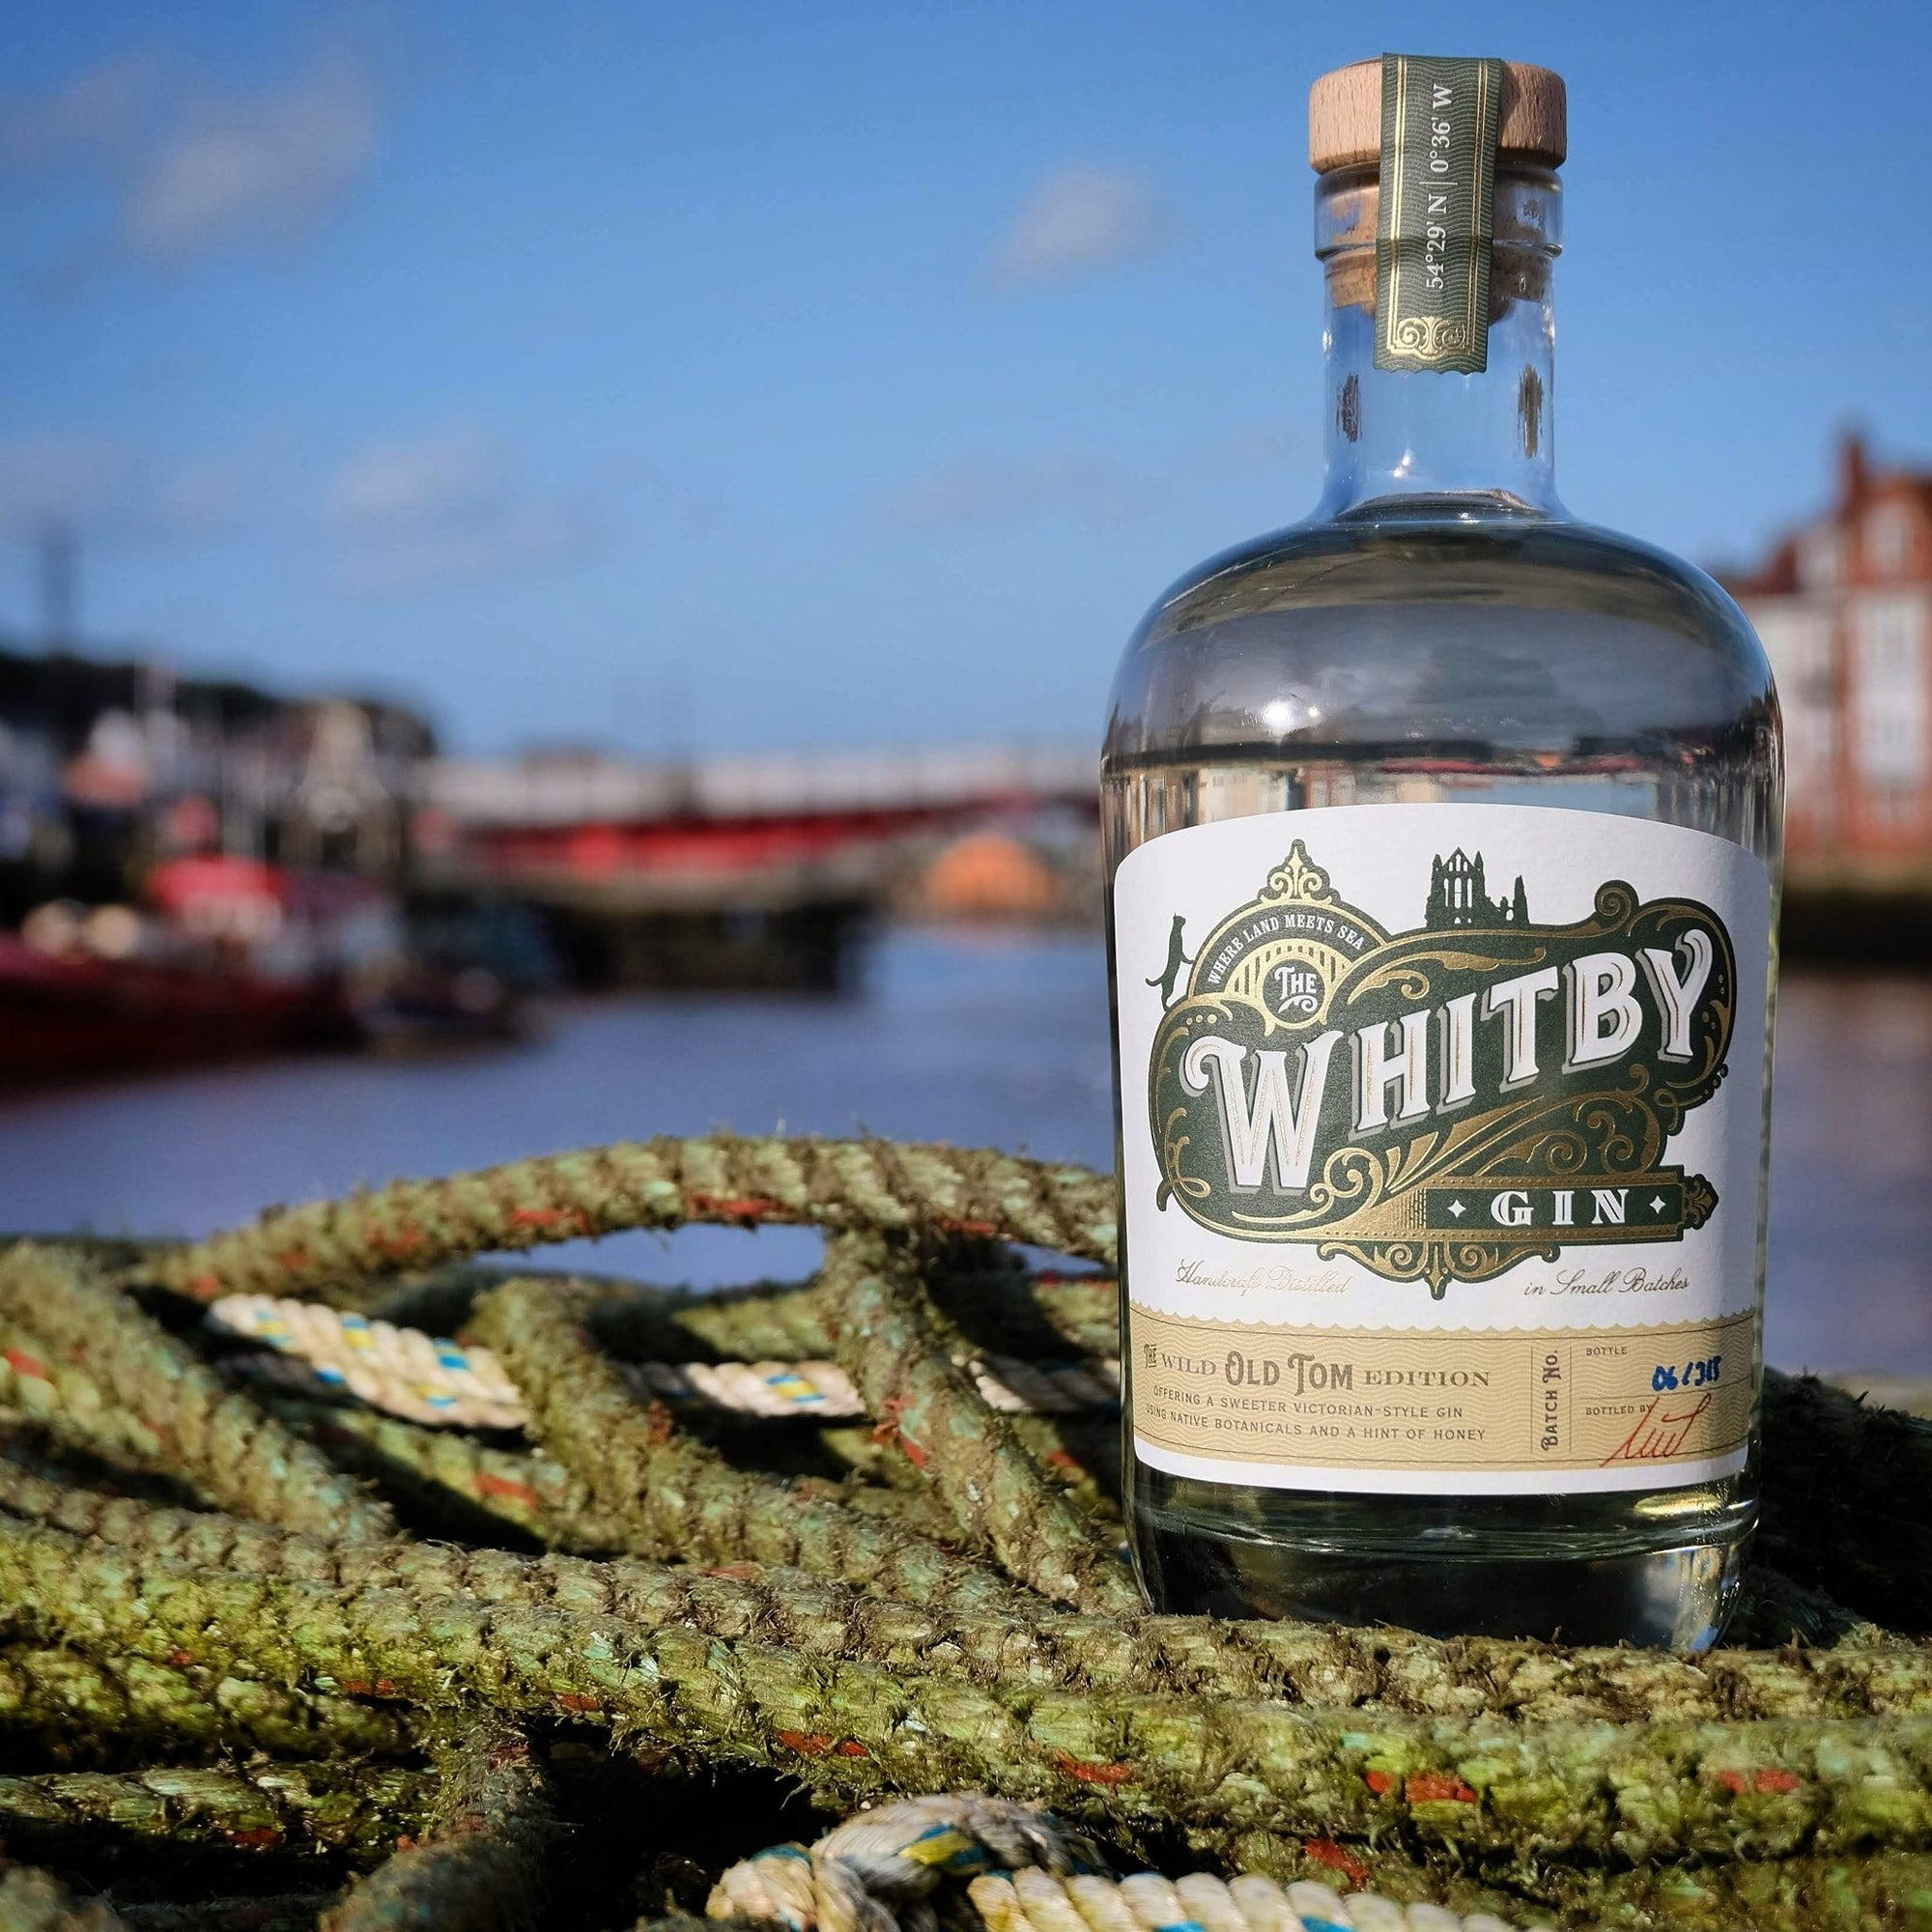 Whitby Gin - Wild Old Tom Edition